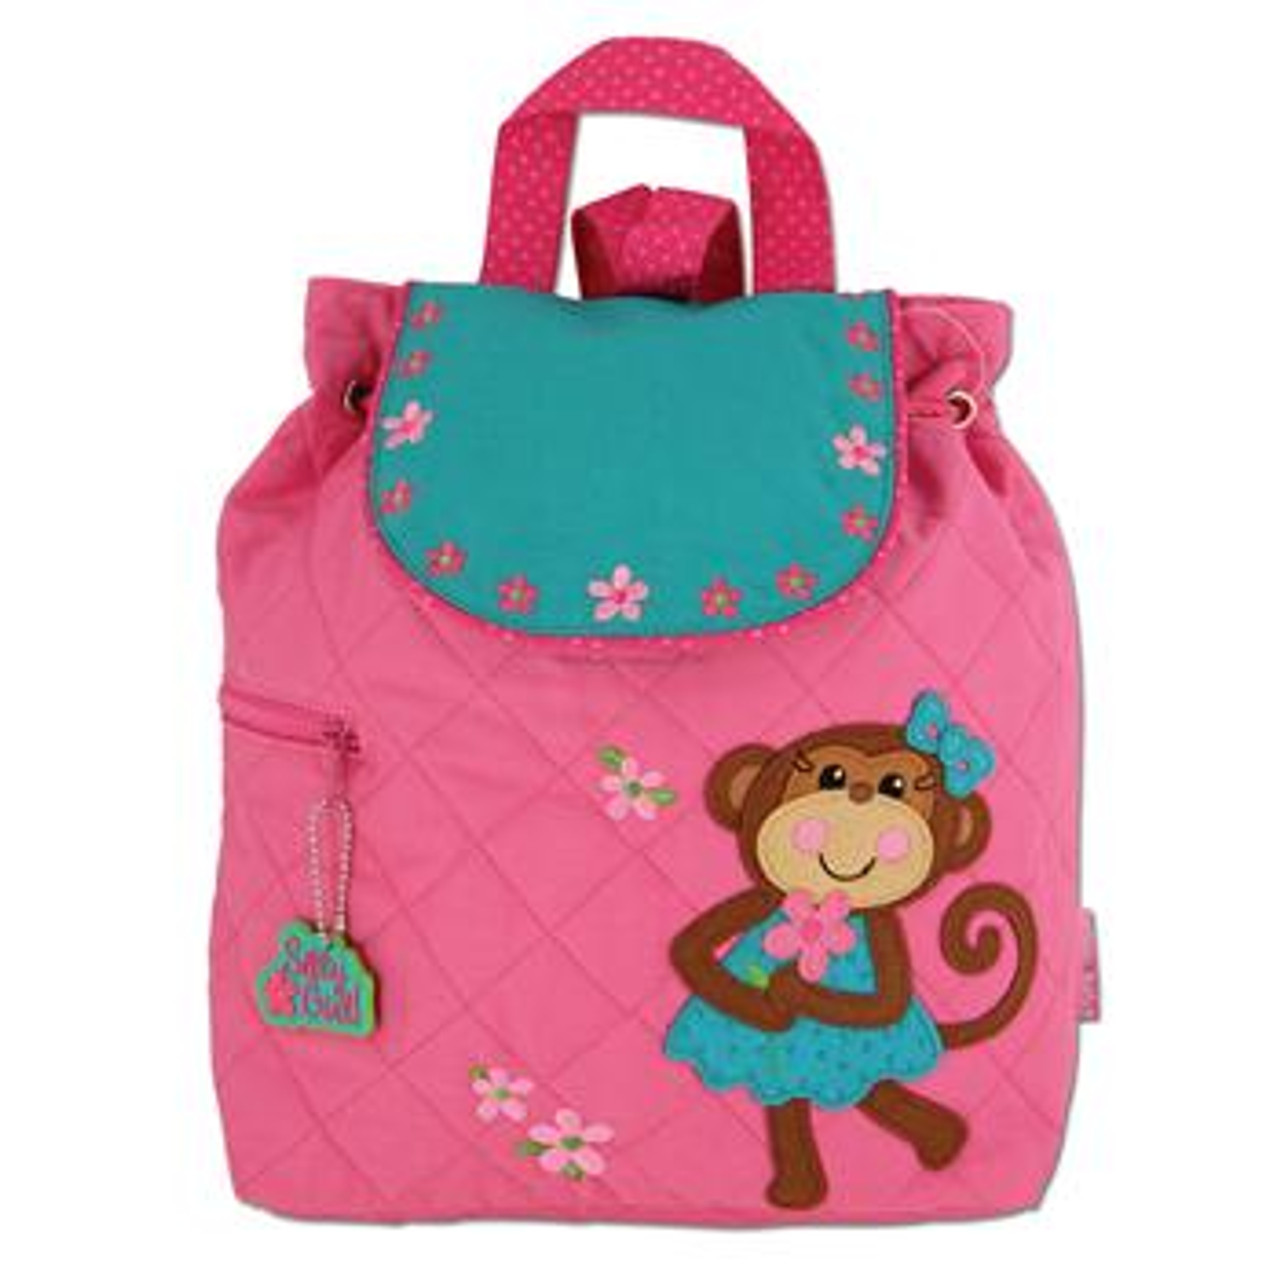 Personalized Stephen Joseph Girl Monkey Backpack Overnight Bag with FREE Embroidery Diaper Bag Toddler Backpack